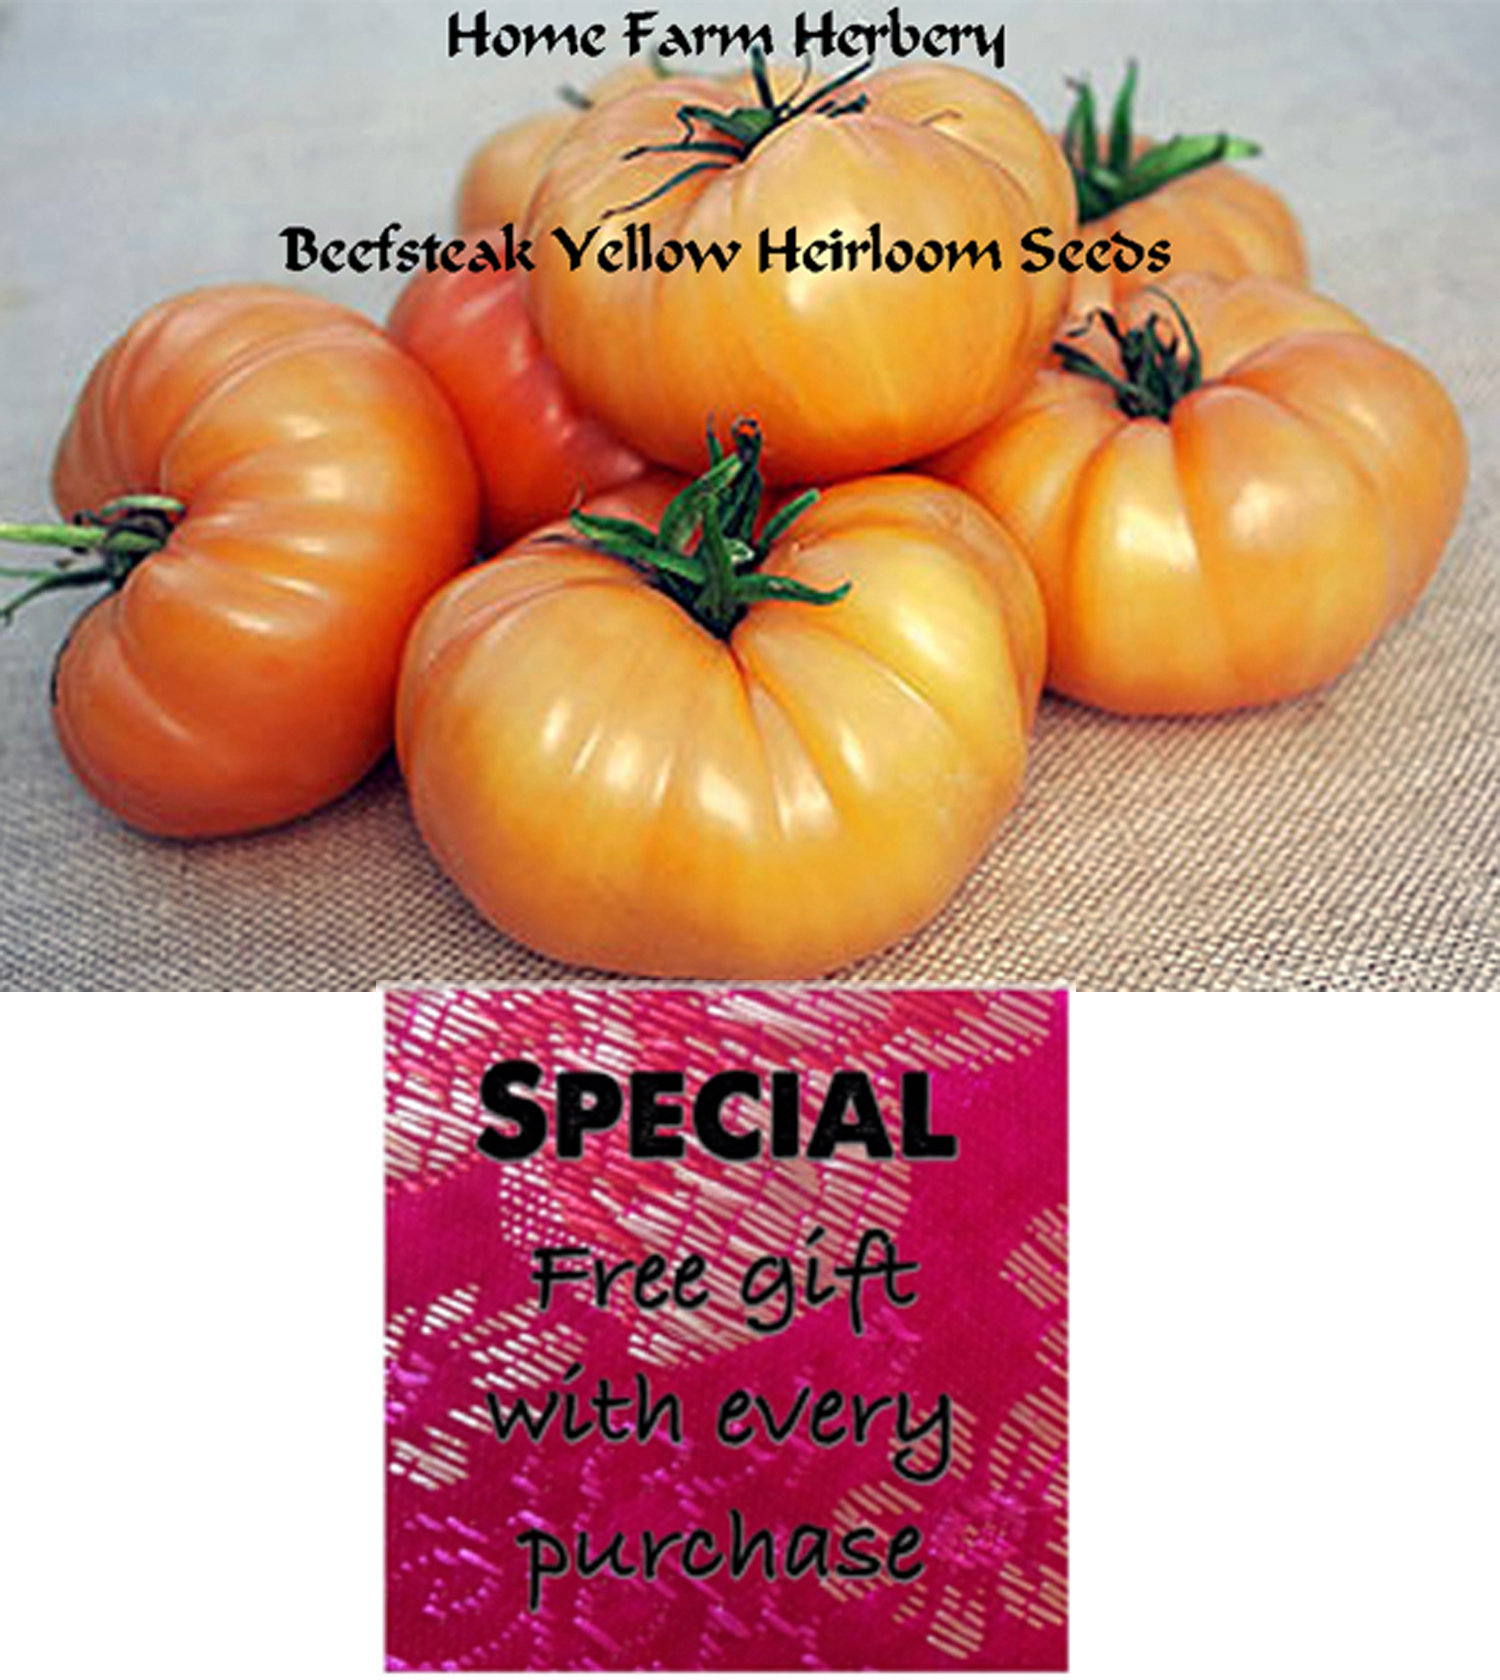 Order the best Beefsteak Yellow Heirloom Tomato Seeds now and get  a free gift